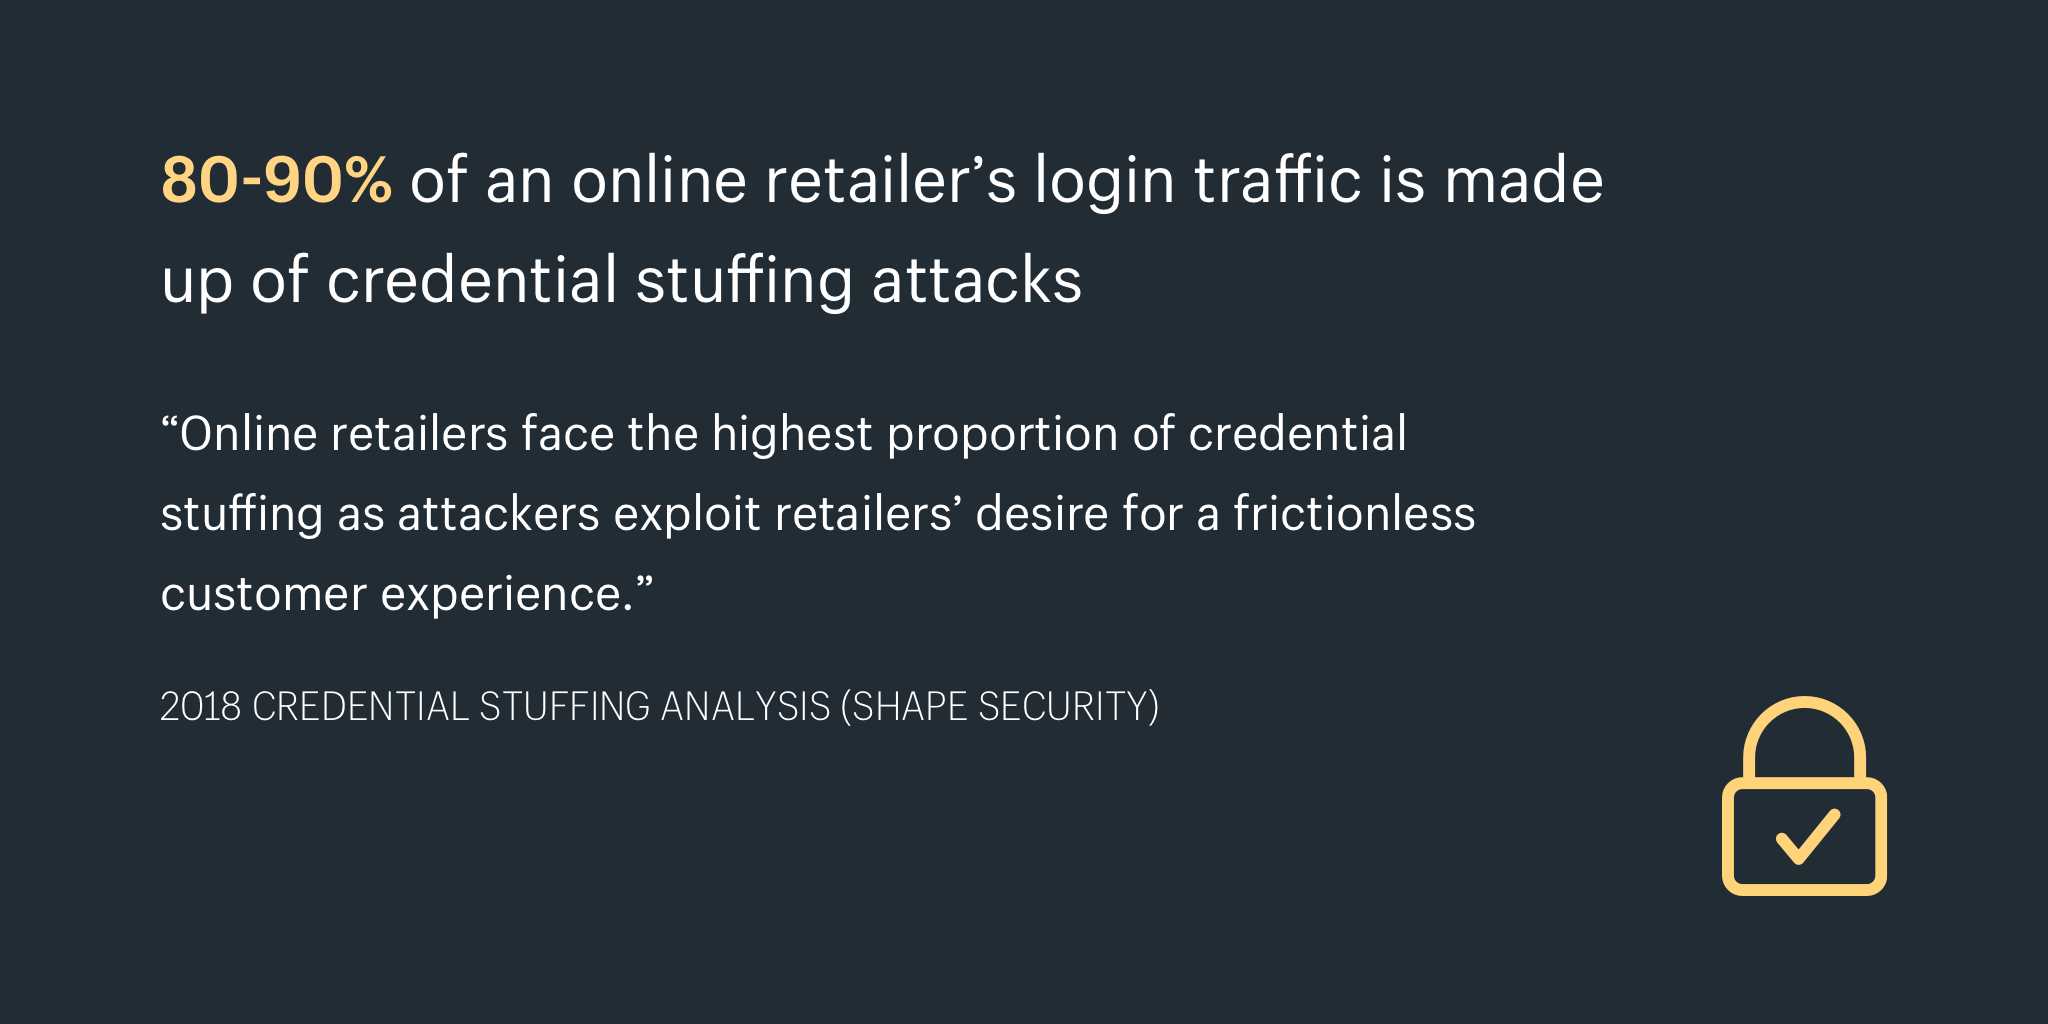 80-90% of an online retailer's login traffic is made up of credential stuffing attacks